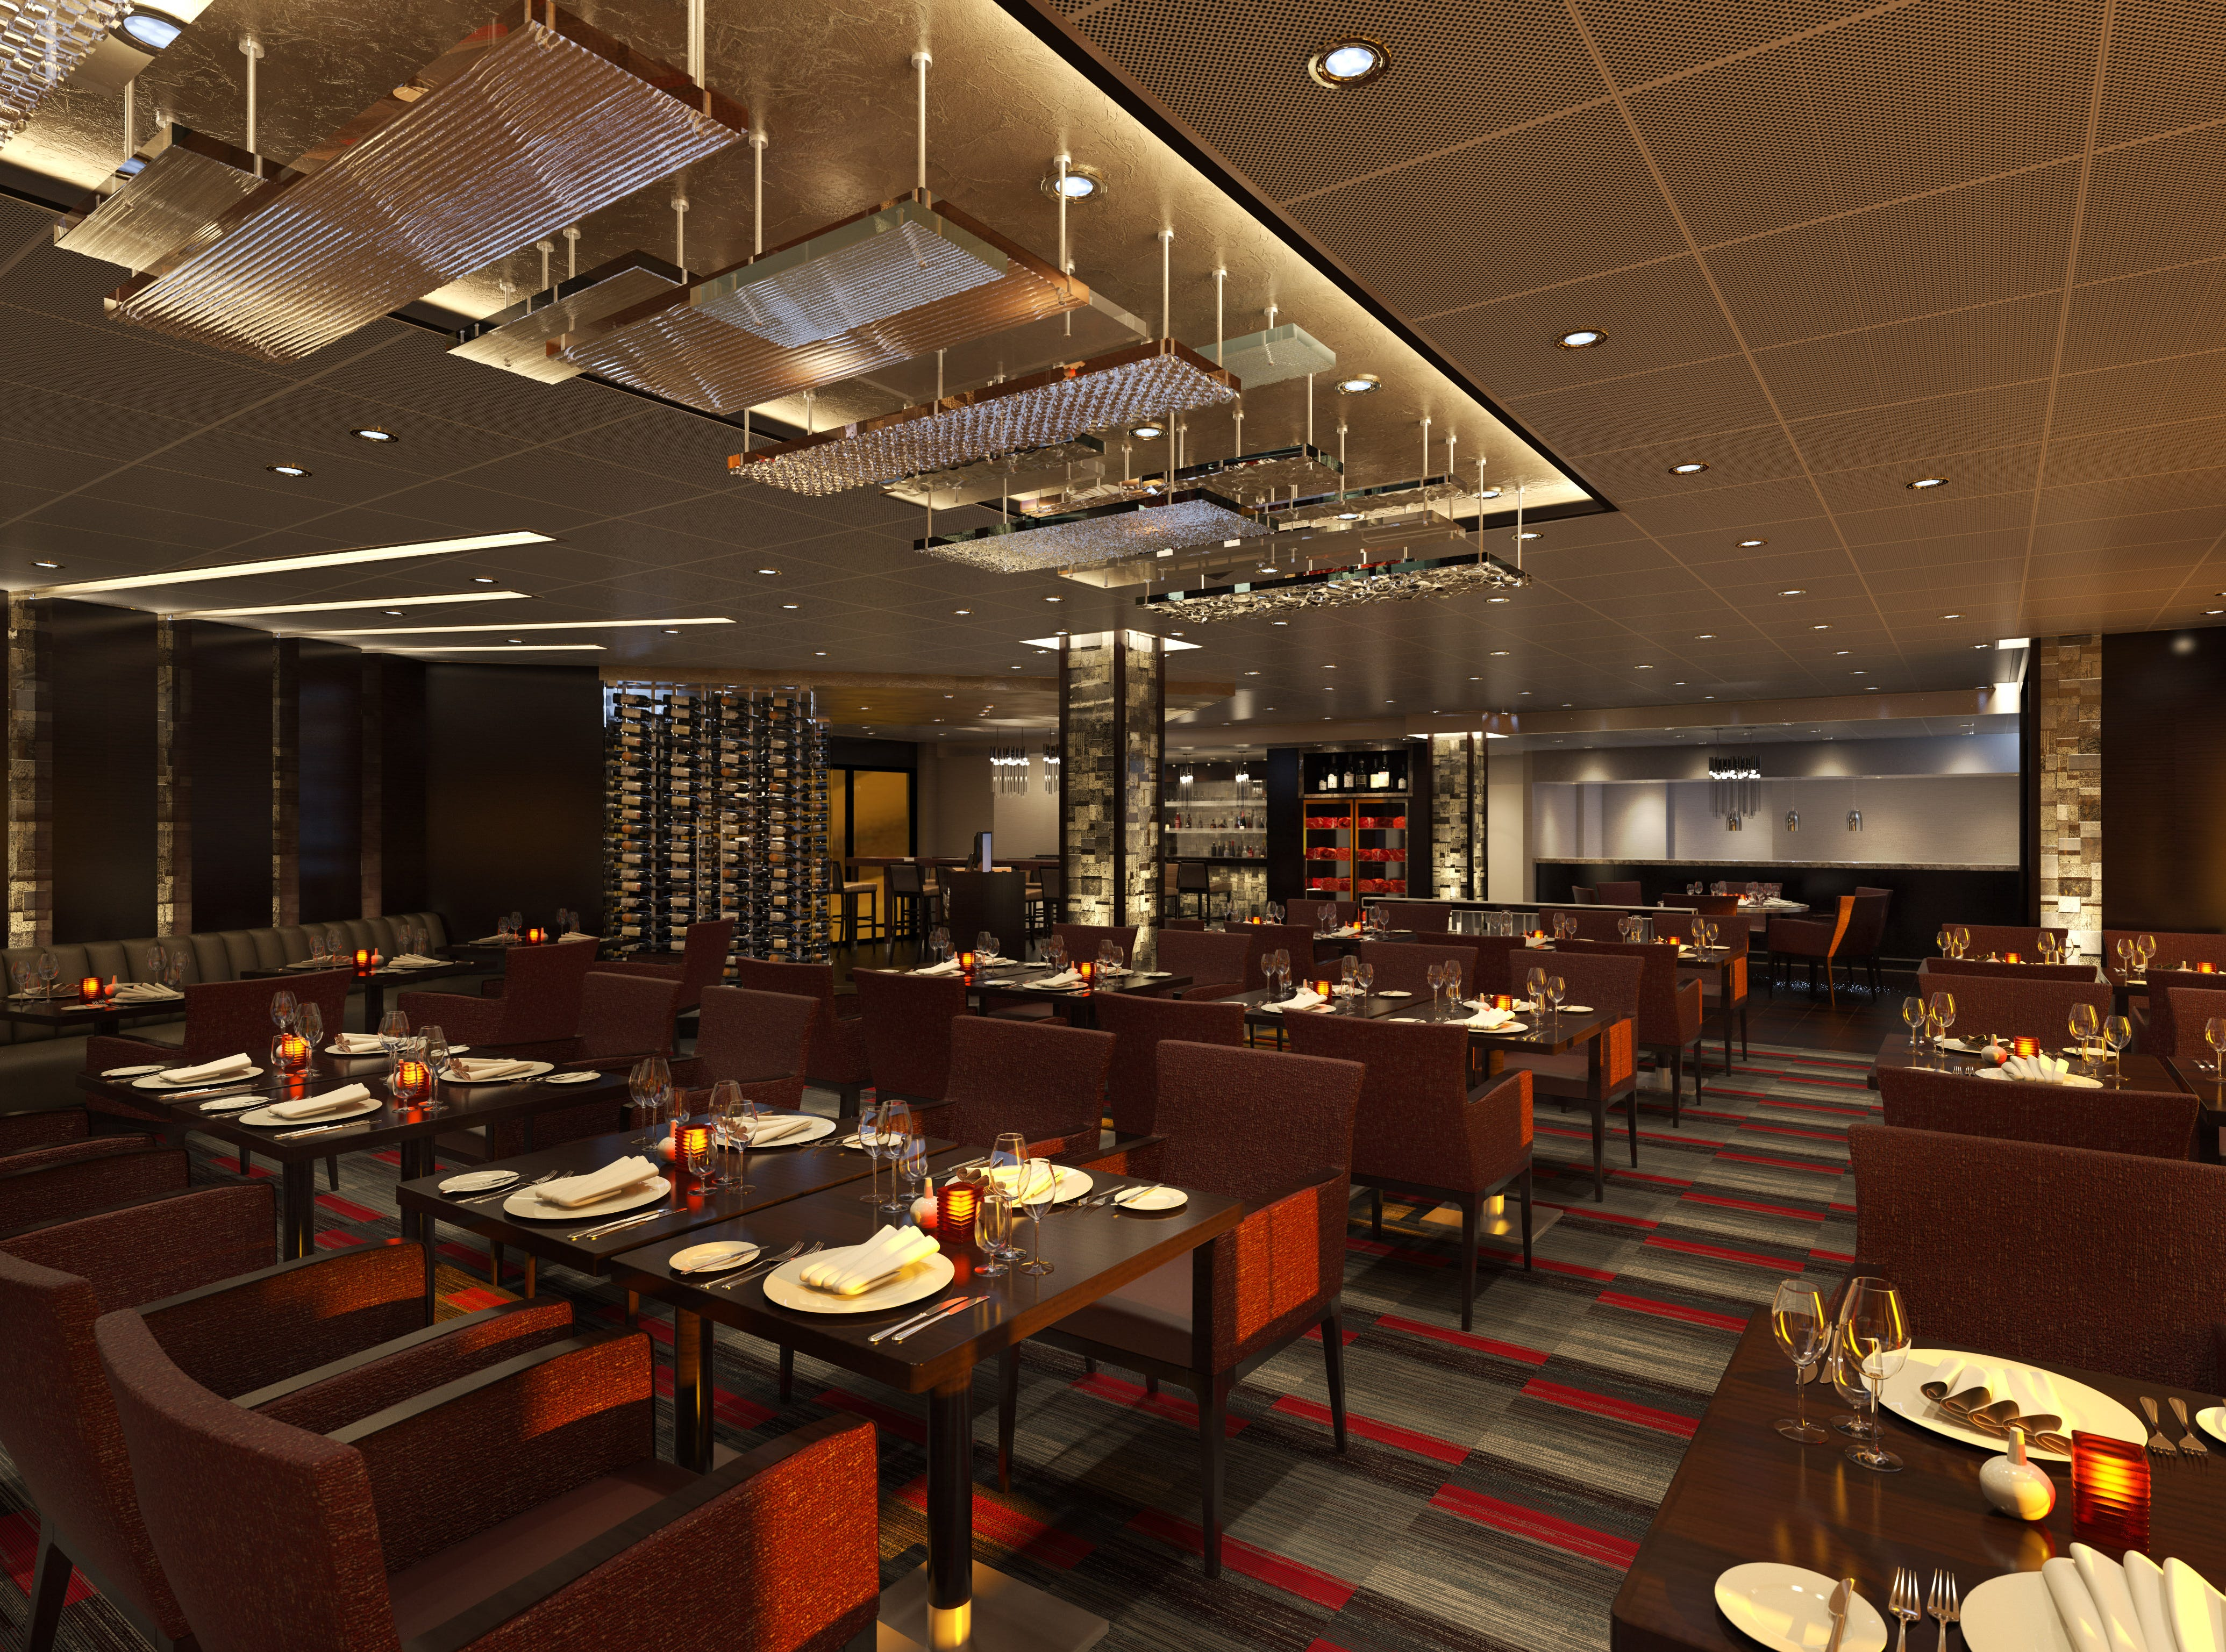 Carnival Panorama will feature a Fahrenheit 555 steakhouse similar to the one on the line's recently unveiled Carnival Horizon.